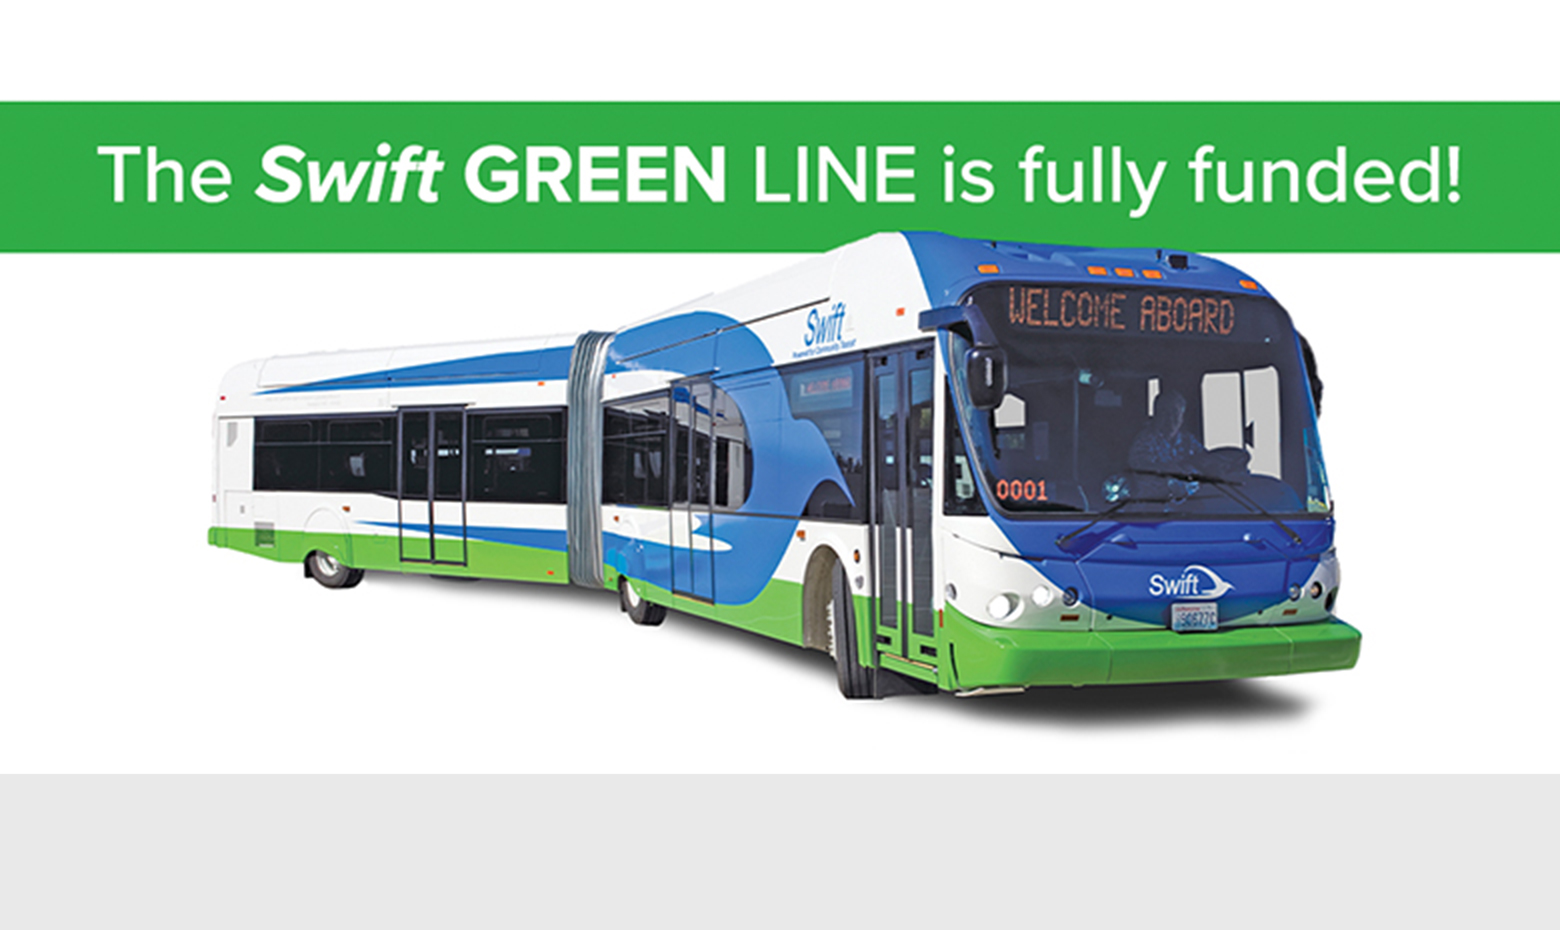 Swift Green Line Funded